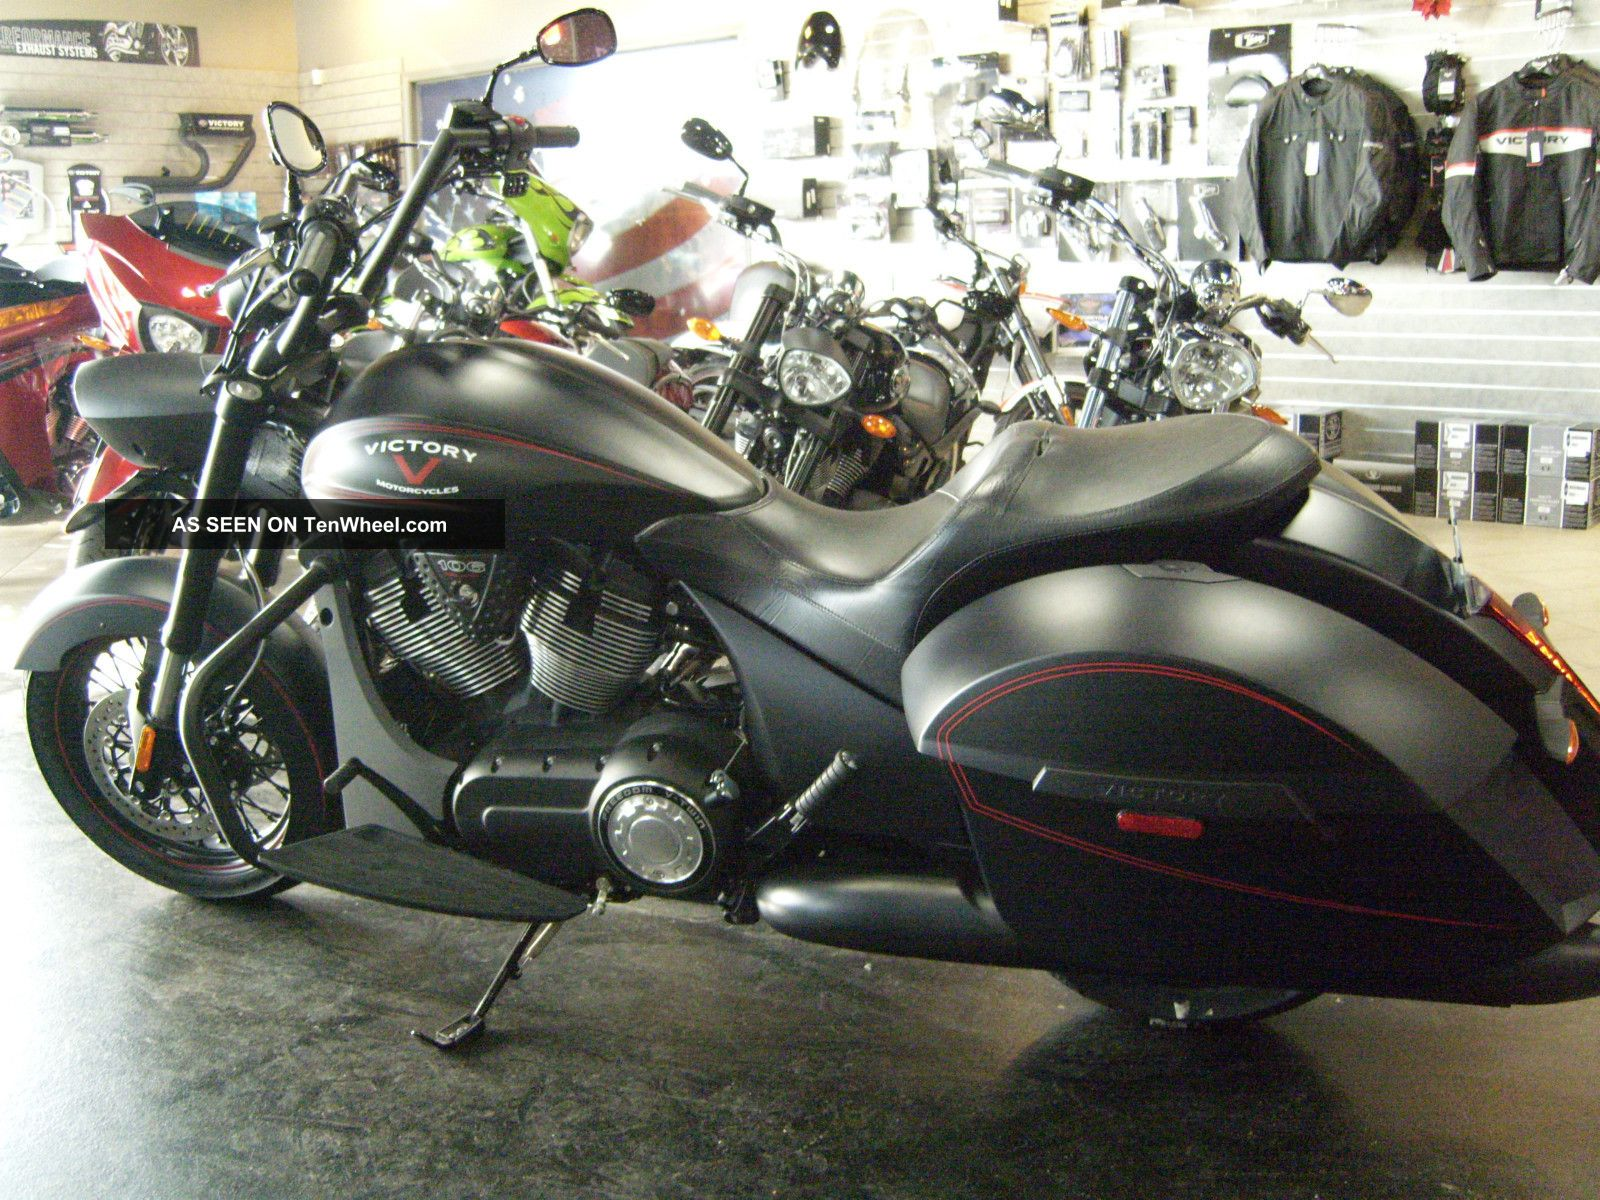 2012 Victory Hardball Motorcycle - Stage 1 Exhaust - Full 3 Yr. Victory photo